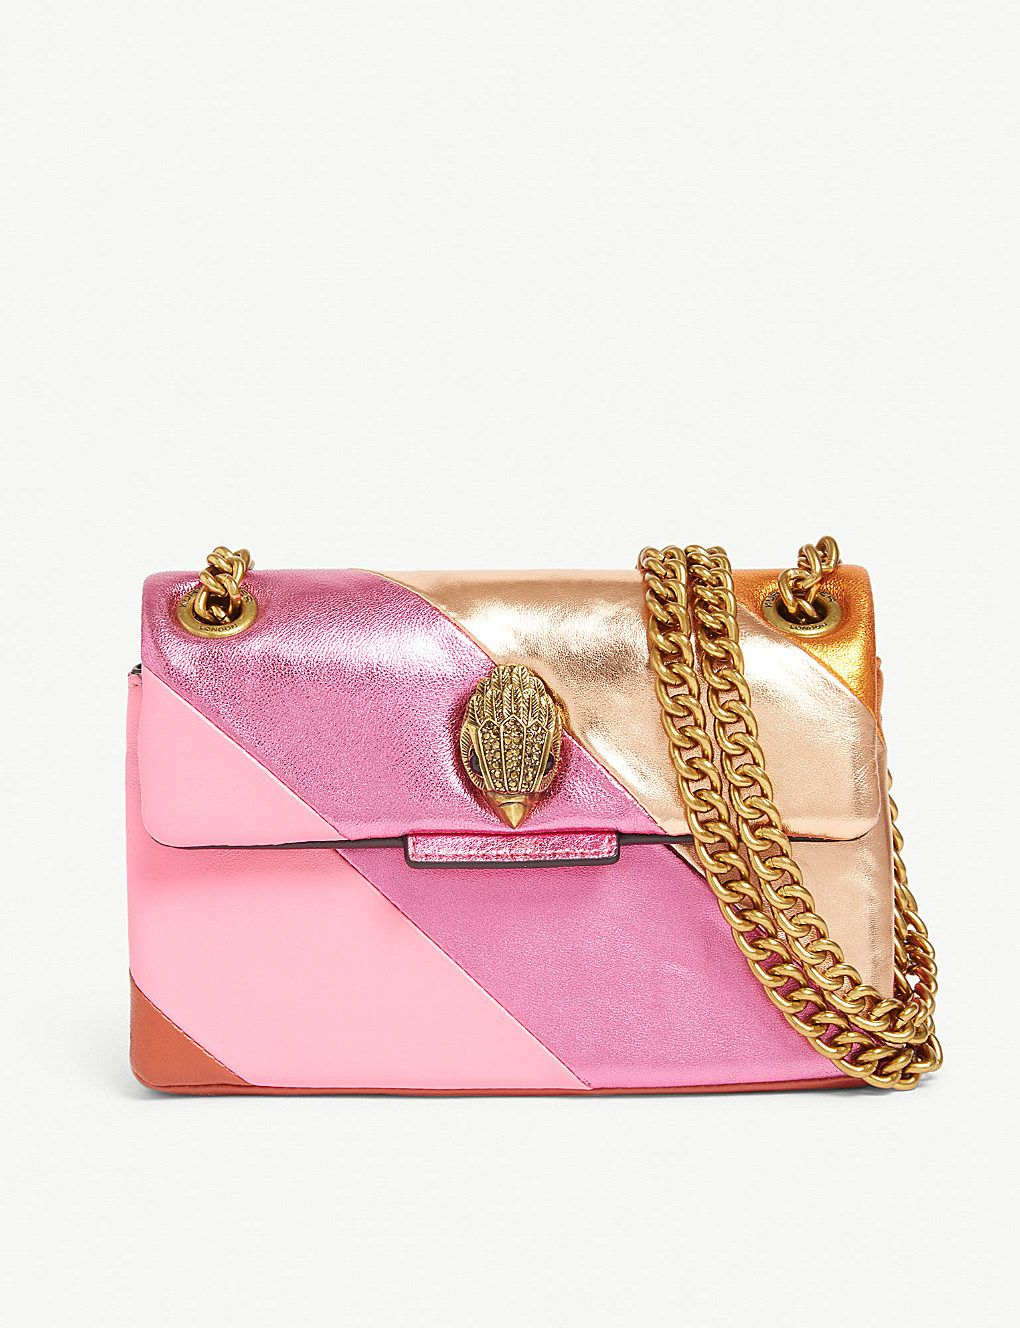 1bd0a26beabf KURT GEIGER LONDON - Mini Kensington S leather shoulder bag |  Selfridges.comm